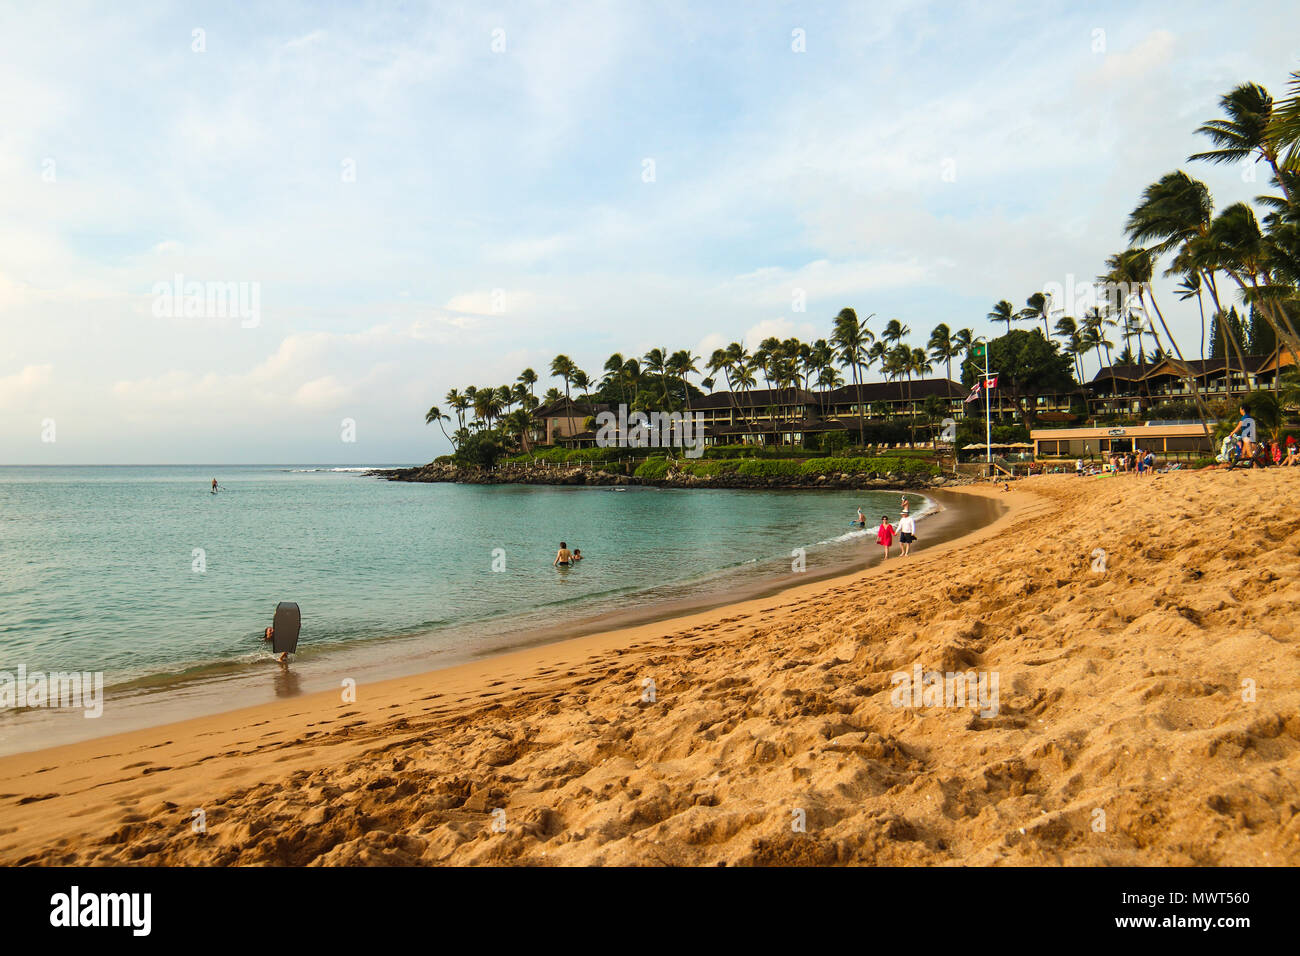 Frequently Rated As One Of The Most Beautiful Beaches In The World Kaanapali Beach In Lahaina Maui Hawaii Stock Photo Alamy,Fall Blooming Perennials Fall Perennial Flowers